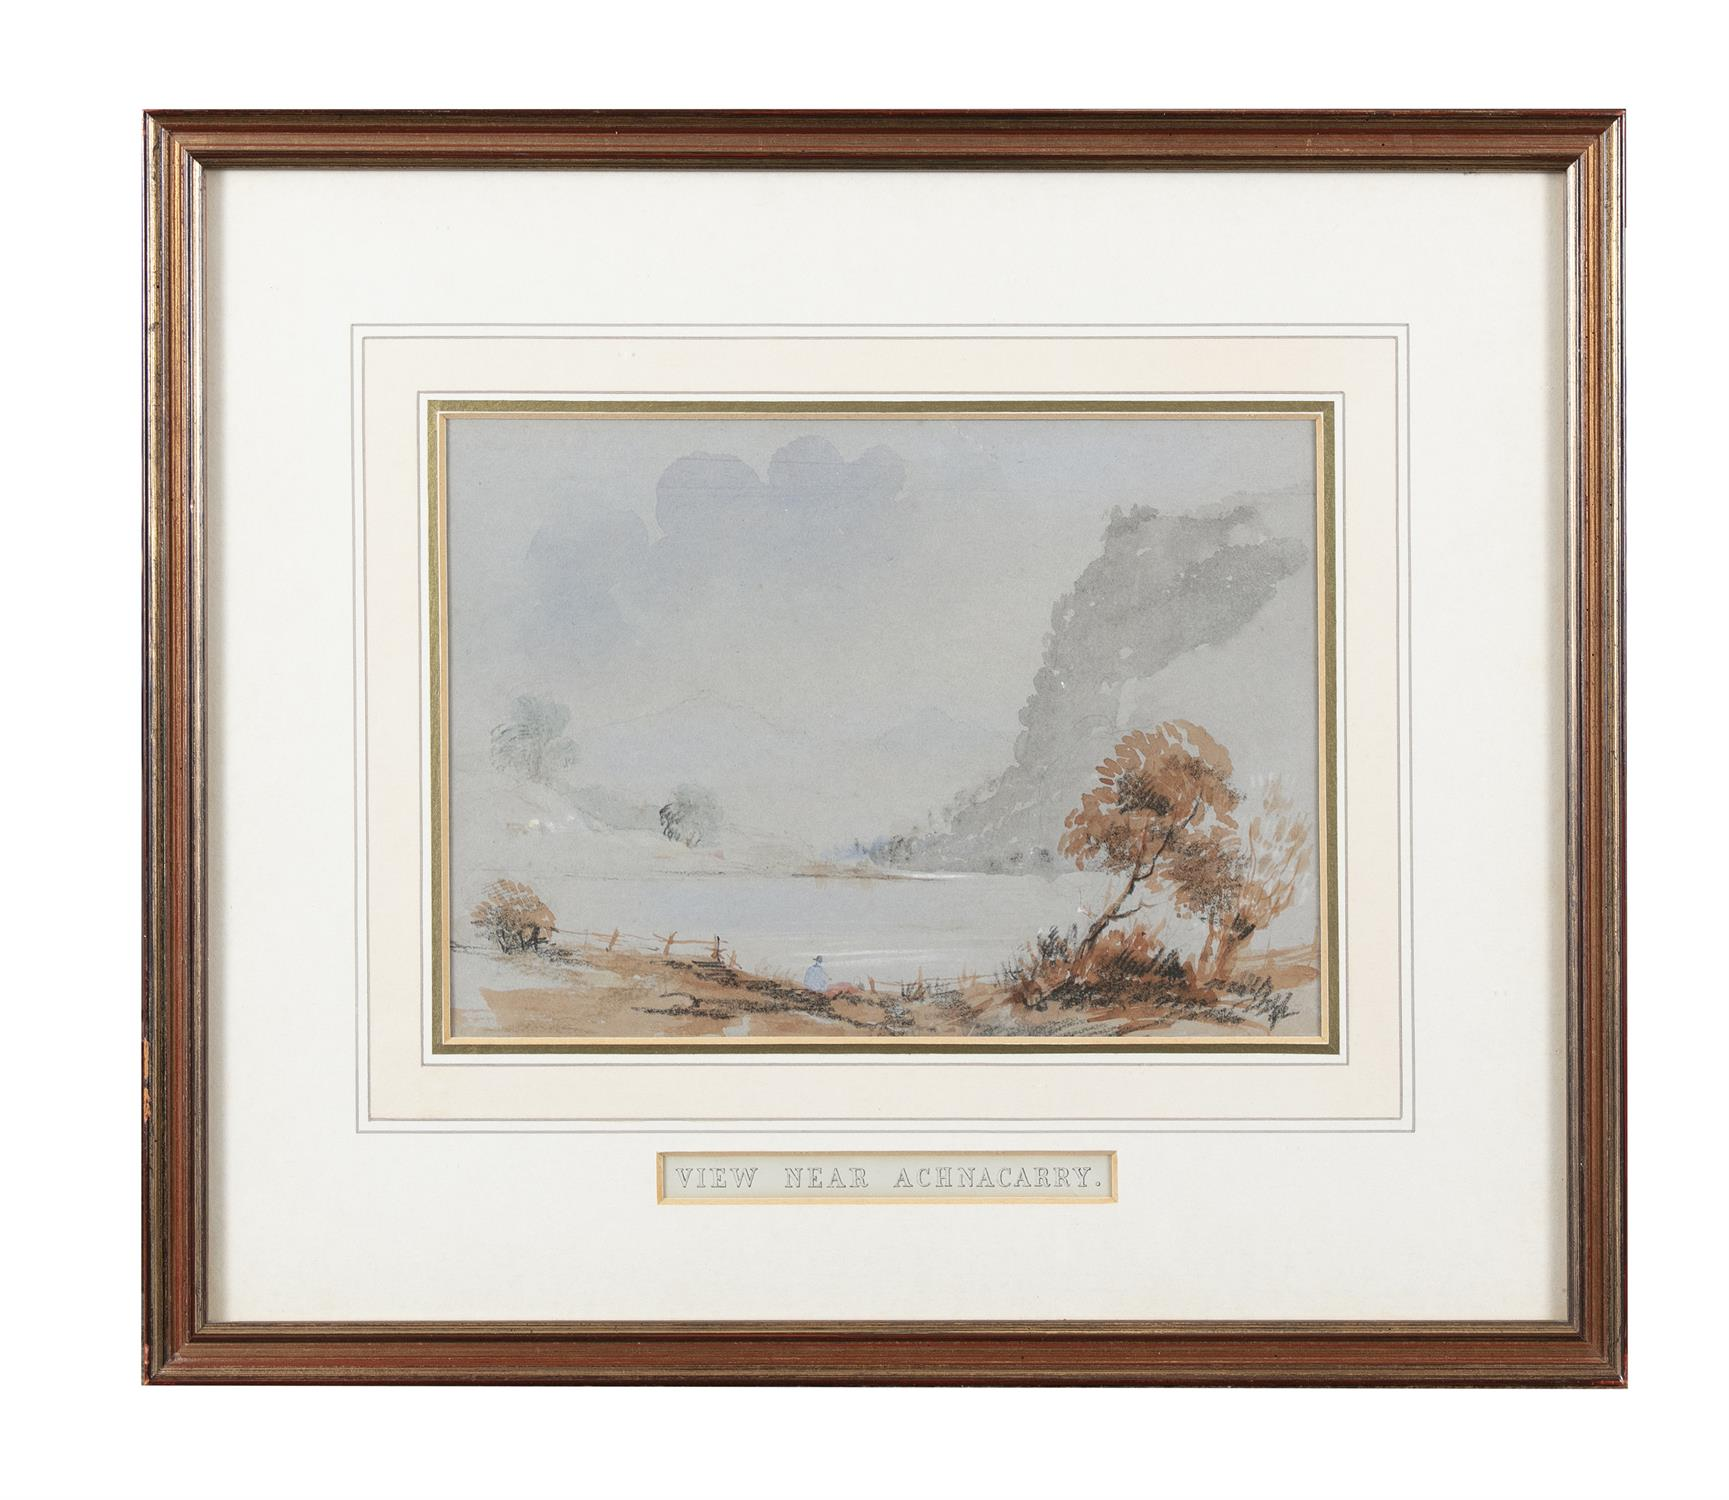 Frederick Marquis of Londonderry 'View Near Achnacarry' and 'View Near Ragatz' Three watercolours, - Image 2 of 8